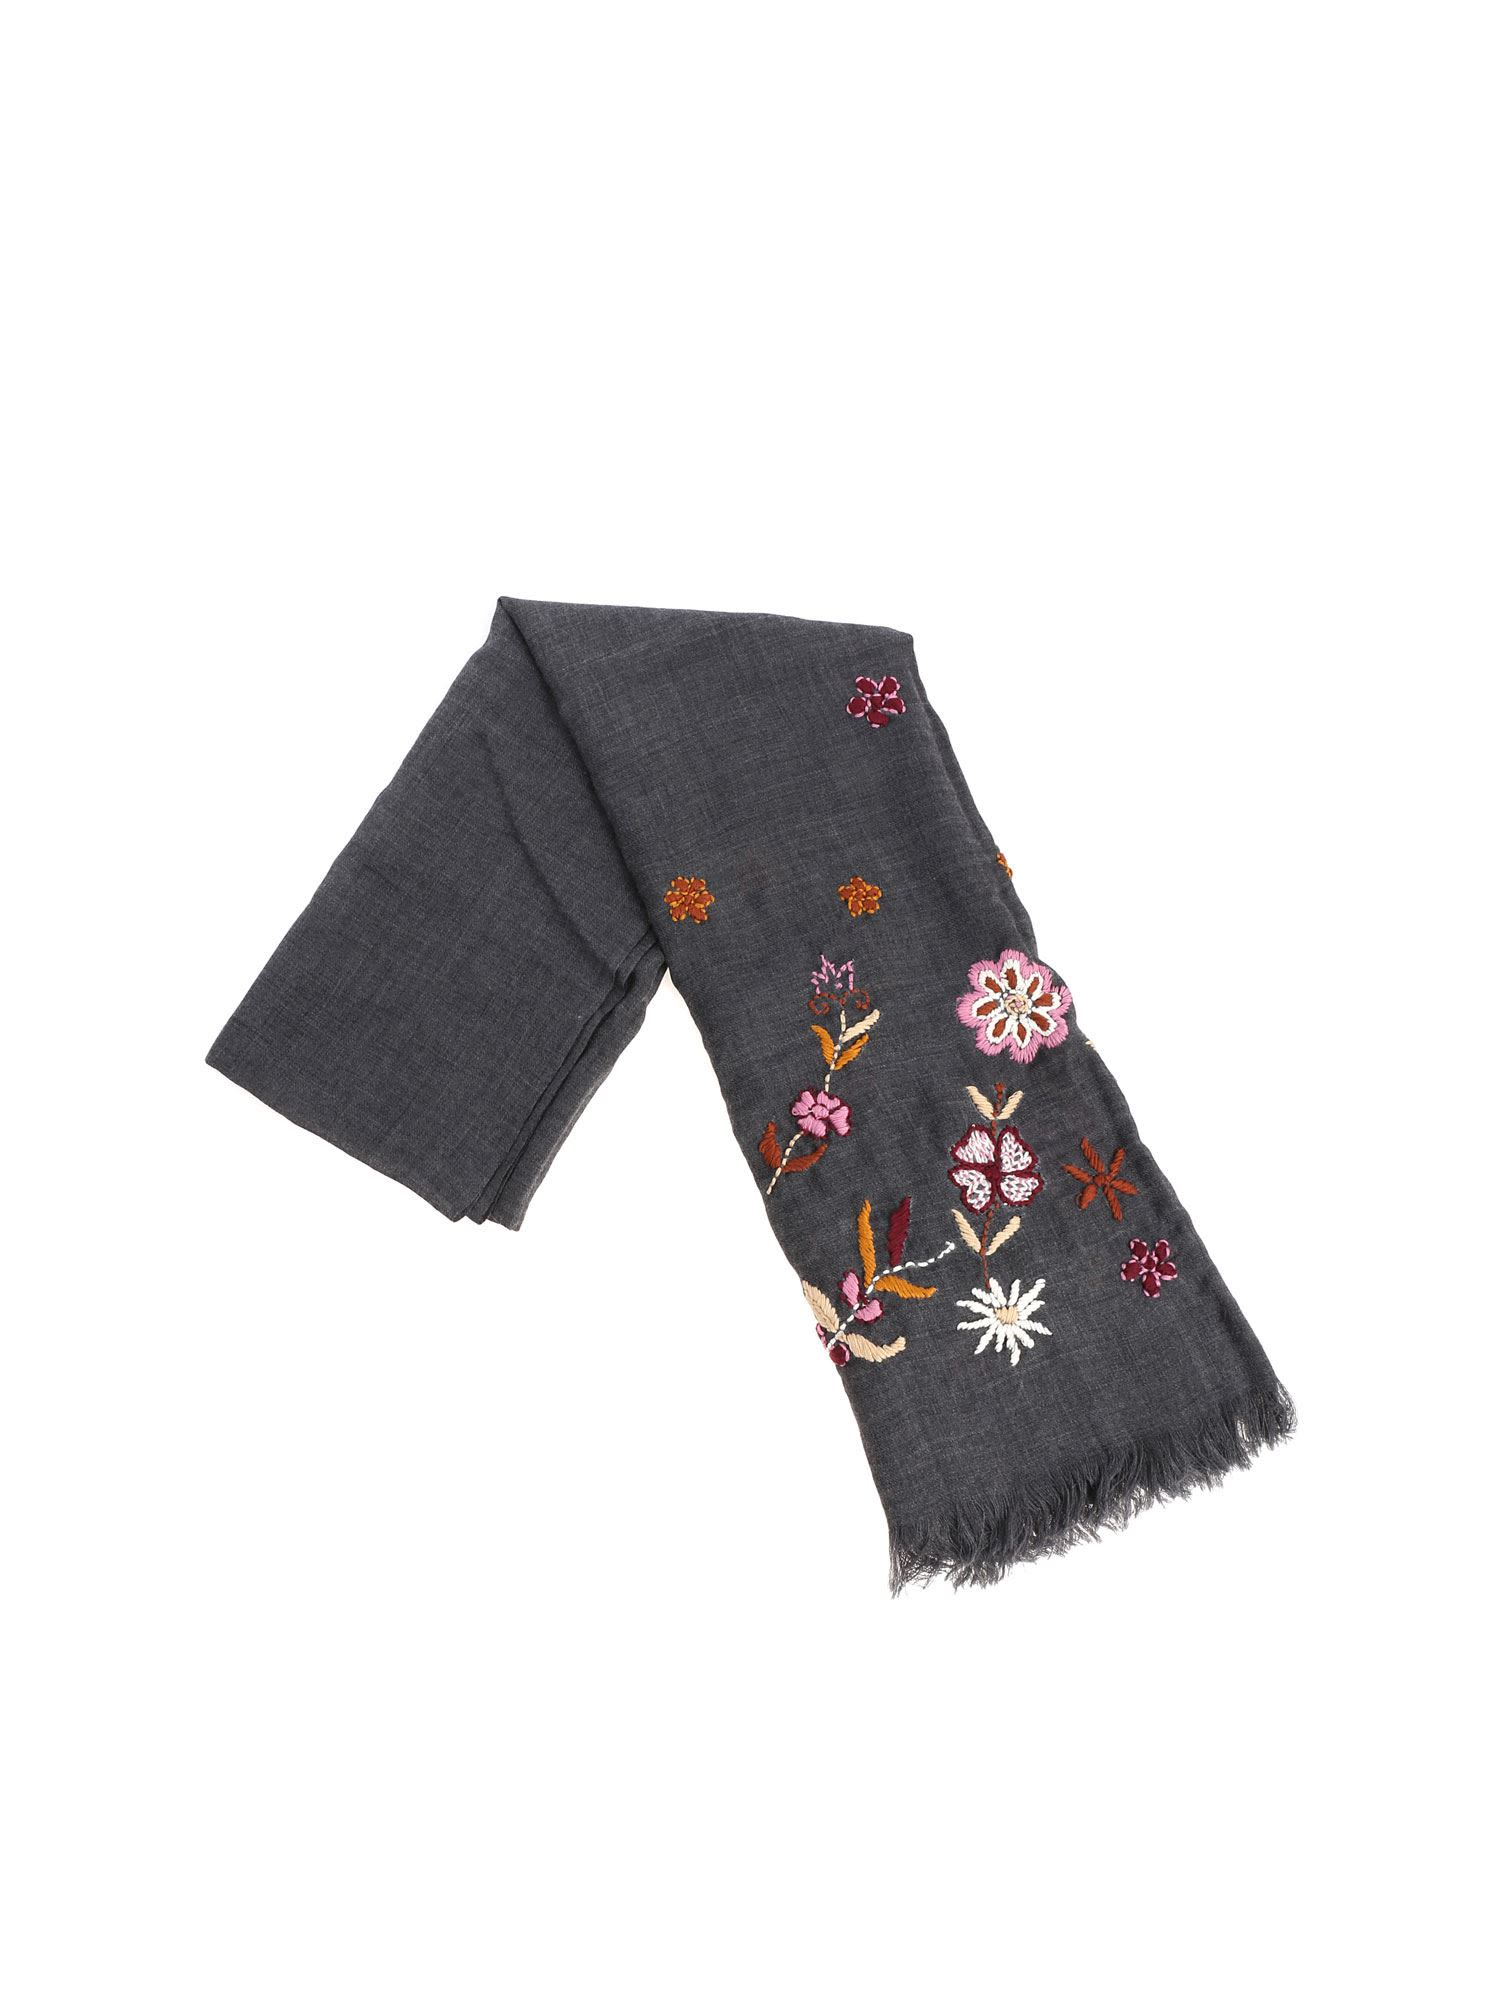 ALTEA Embroidered Scarf in Grey/Pink